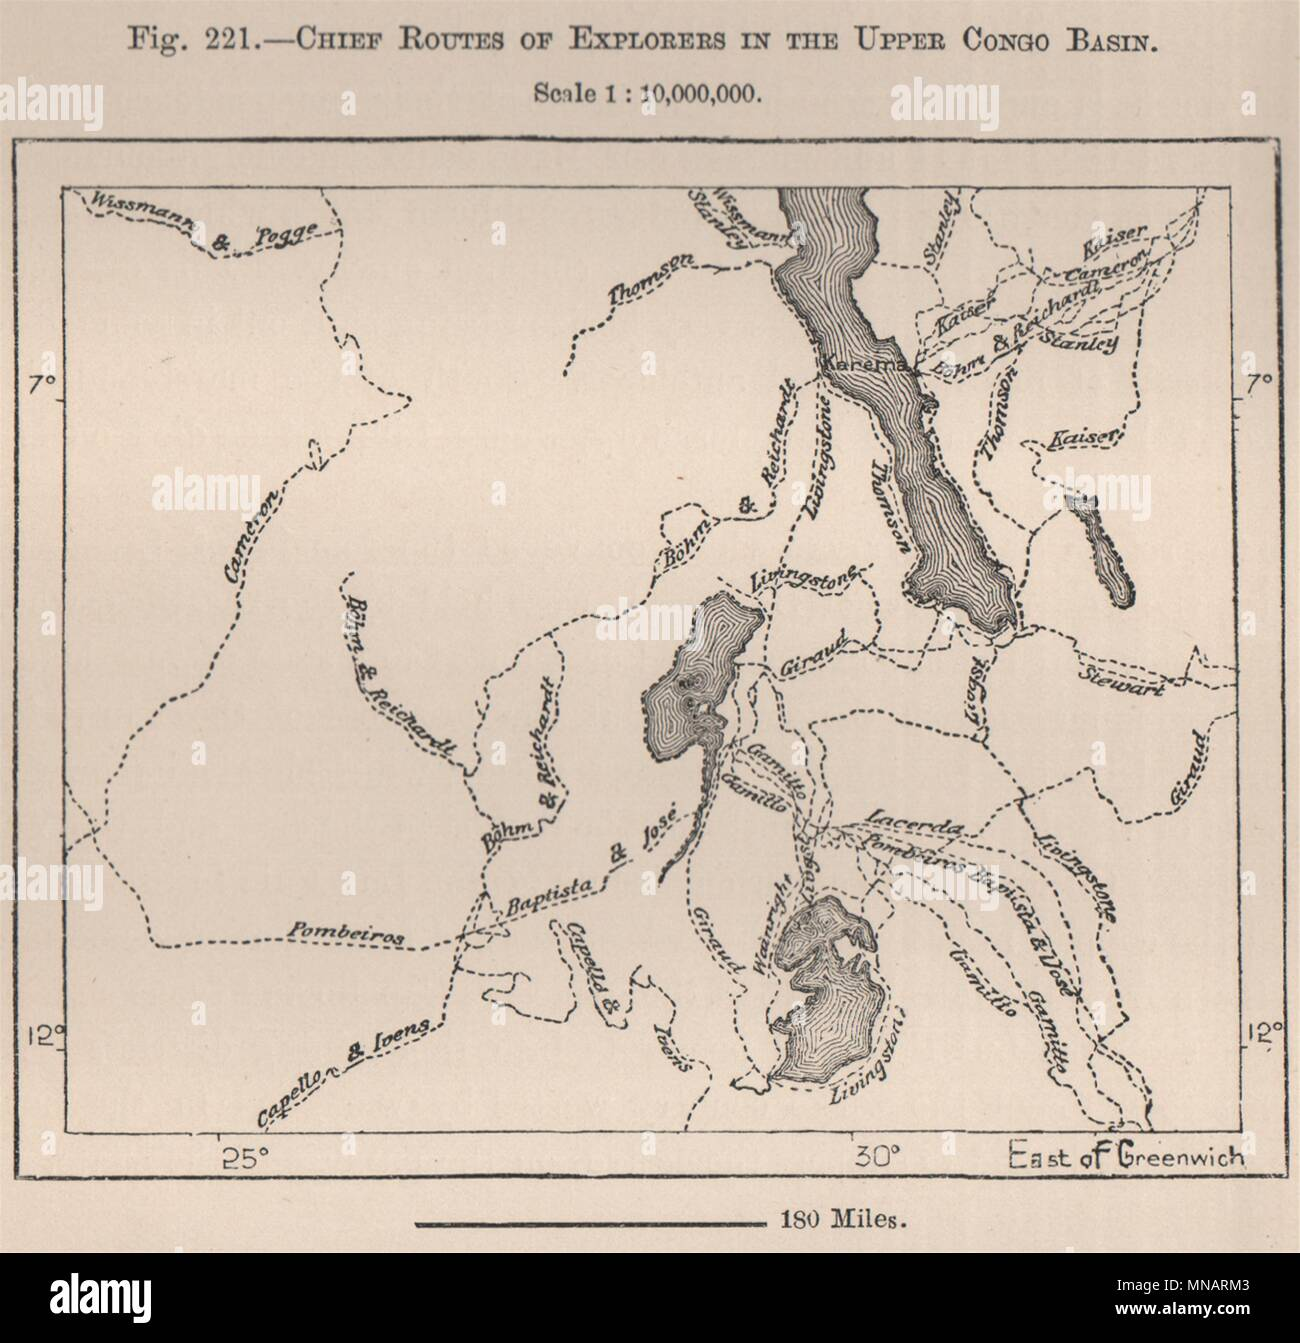 Congo Basin On Map Of Africa.Chief Routes Of Explorers In The Upper Congo Basin Africa 1885 Old